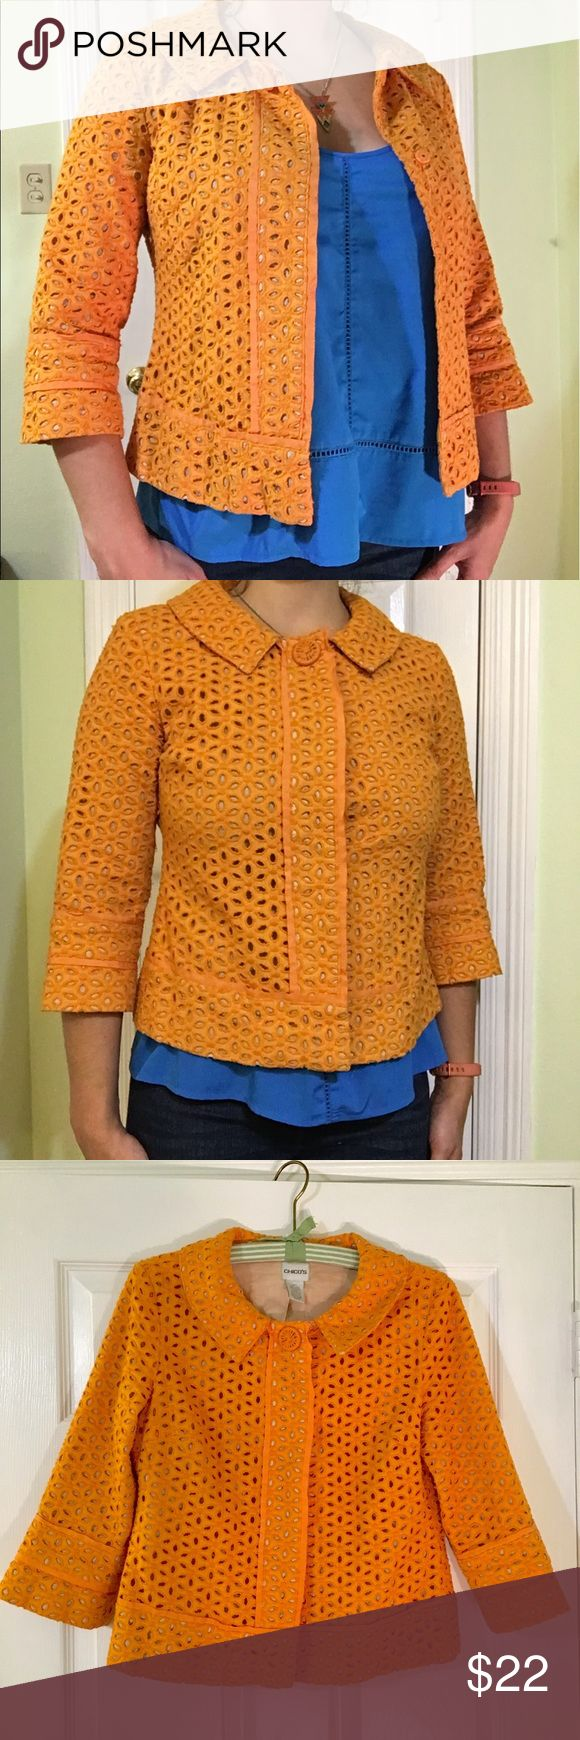 Chico's Orange Floral Eyelet Lace Jacket Perfect for spring or summer! The slight bell sleeves have a thick band feature edged with ribbon. This same feature is used around the bottom of the jacket. There are three snap buttons down the front with only the top snap at the collar accentuated by a large button. The jacket is completely lined with a 100% cotton fabric. Keep in mind Chico's sizes, fits like a S/M.                  Love this jacket, just don't go to enough garden parties…